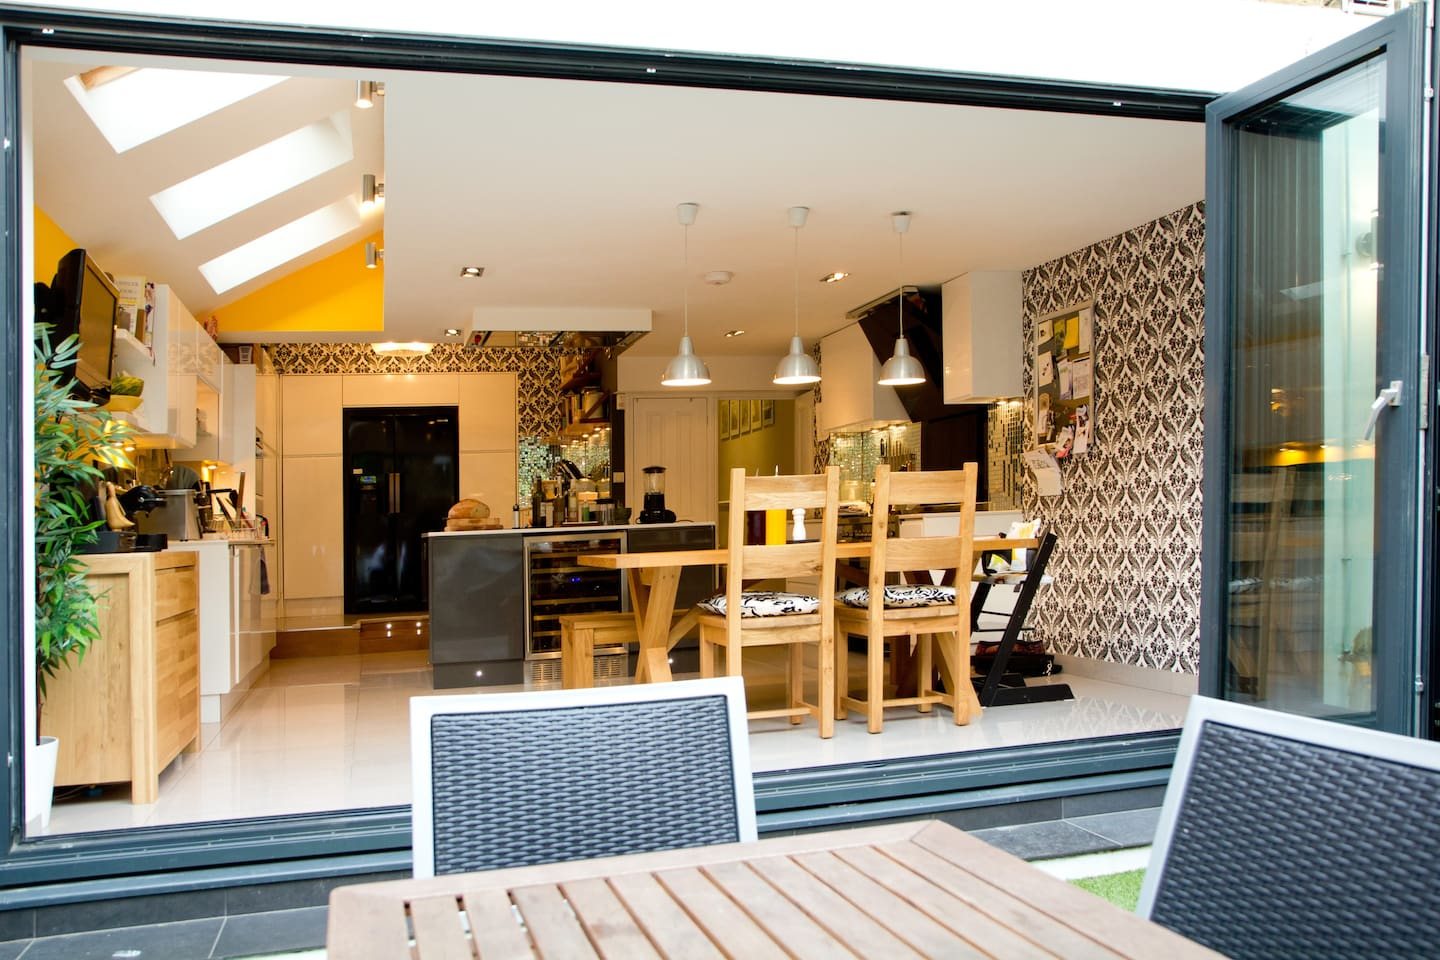 The outdoor living kitchen